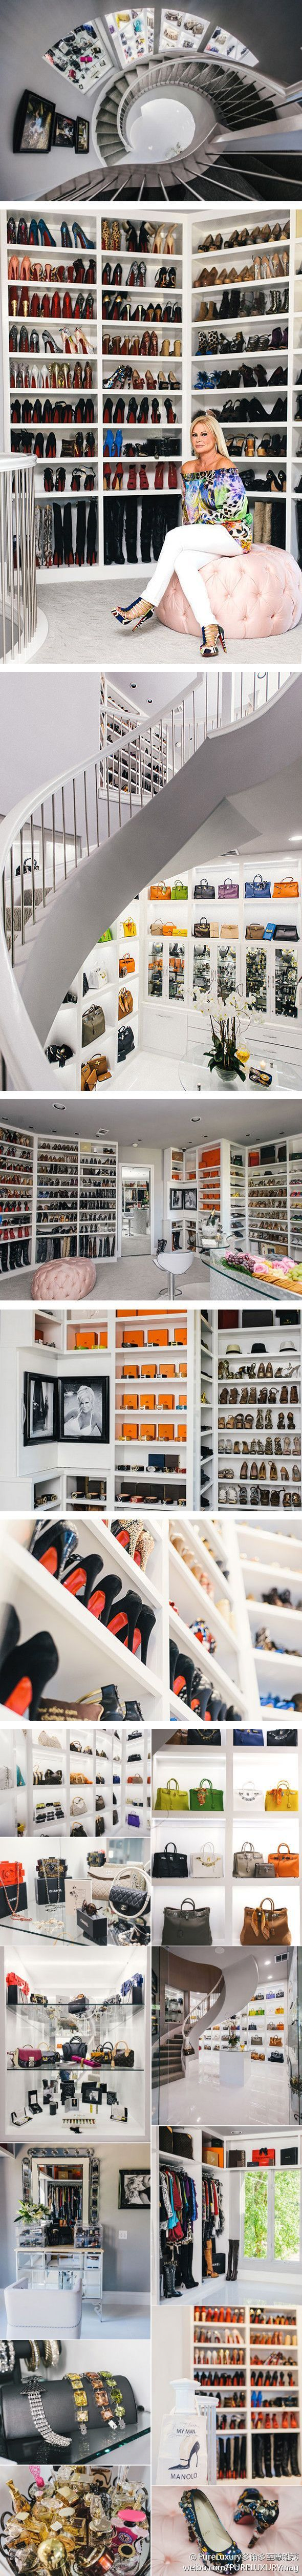 Theresa Roemer's Fabulously Luxurious Closet - Pure Luxury Magazine - ShazB - Dream Homes